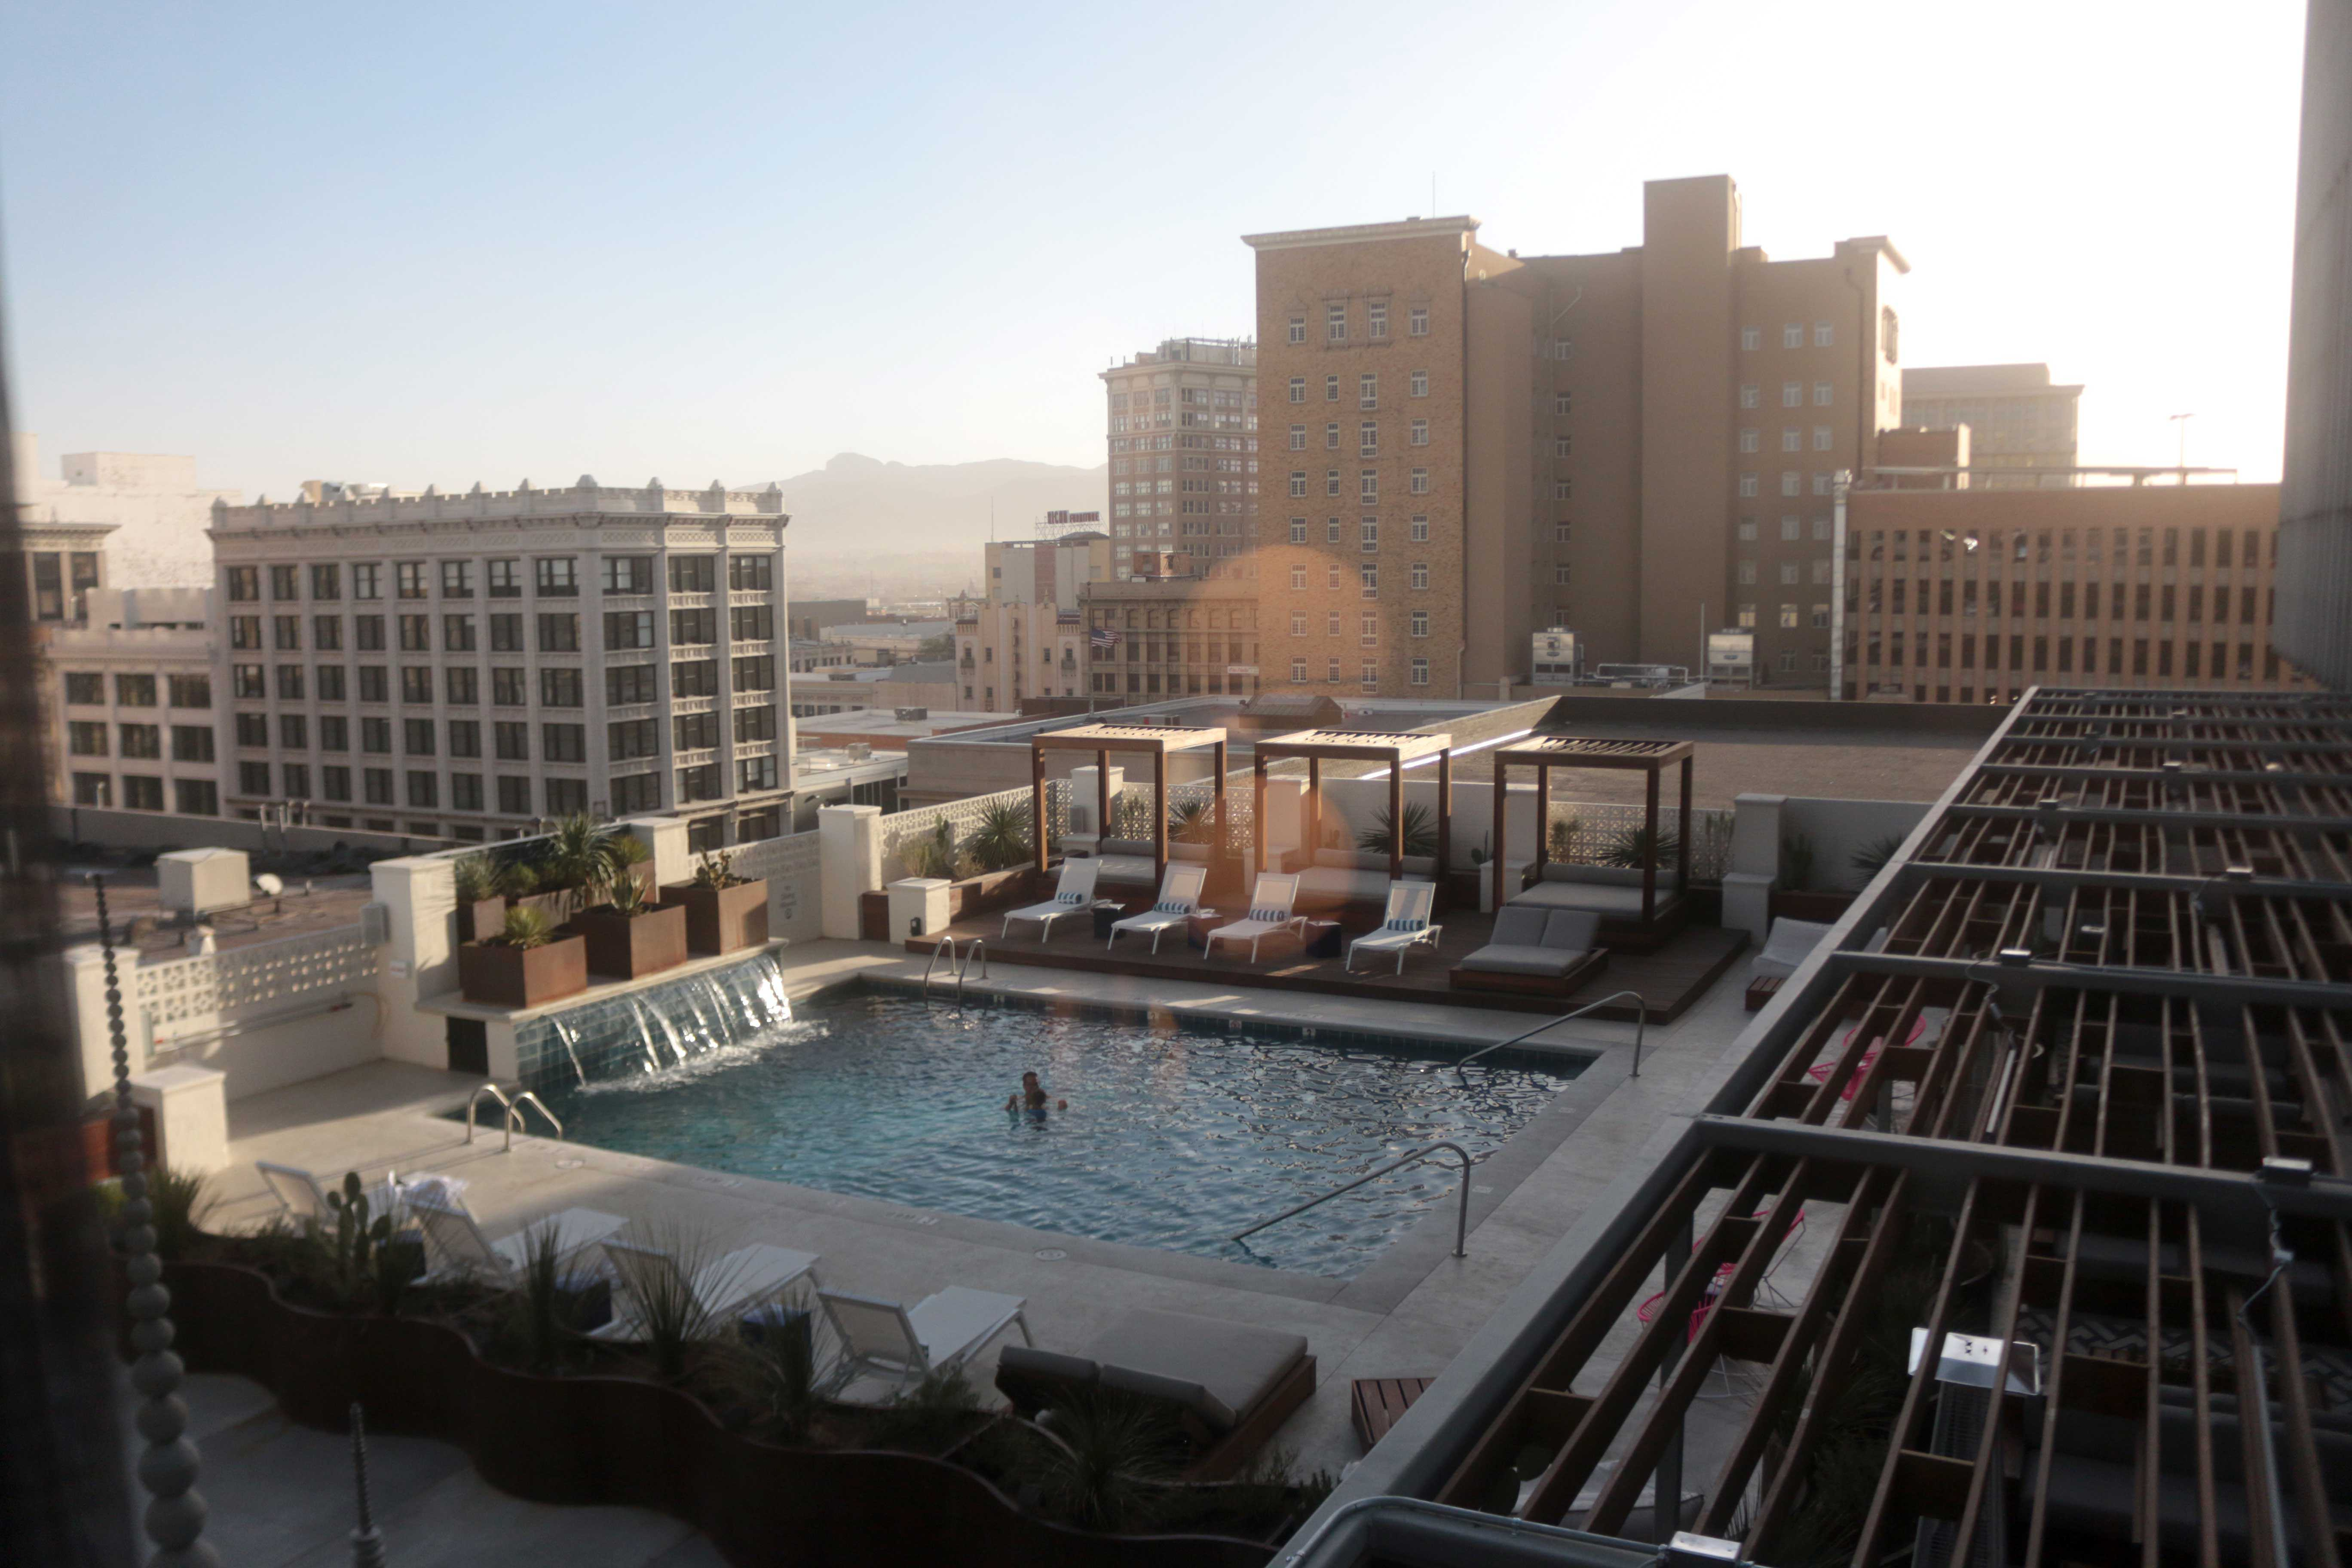 Hotel Indigo is located at 325 N. Kansas St. in downtown El Paso. The hotel includes a modish pool, contemporary rooms and the Circa 1963 bar.